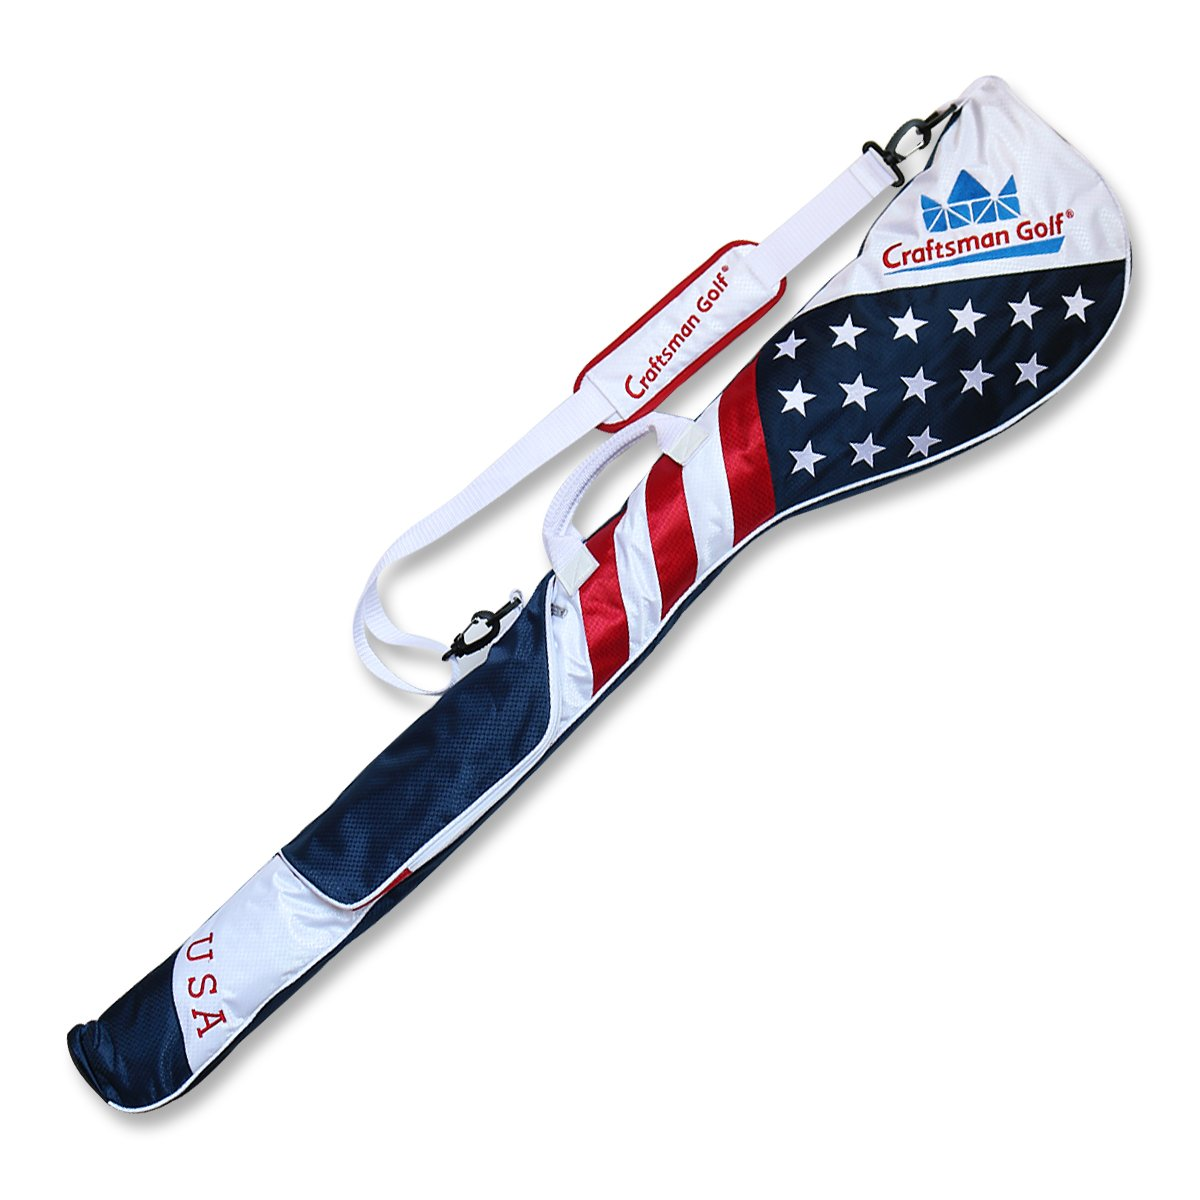 Craftsman Golf Stars and Stripes American USA US Flag Club Case Sunday Bag Red White Blue For 6-7 Clubs 49'' by Craftsman Golf (Image #1)